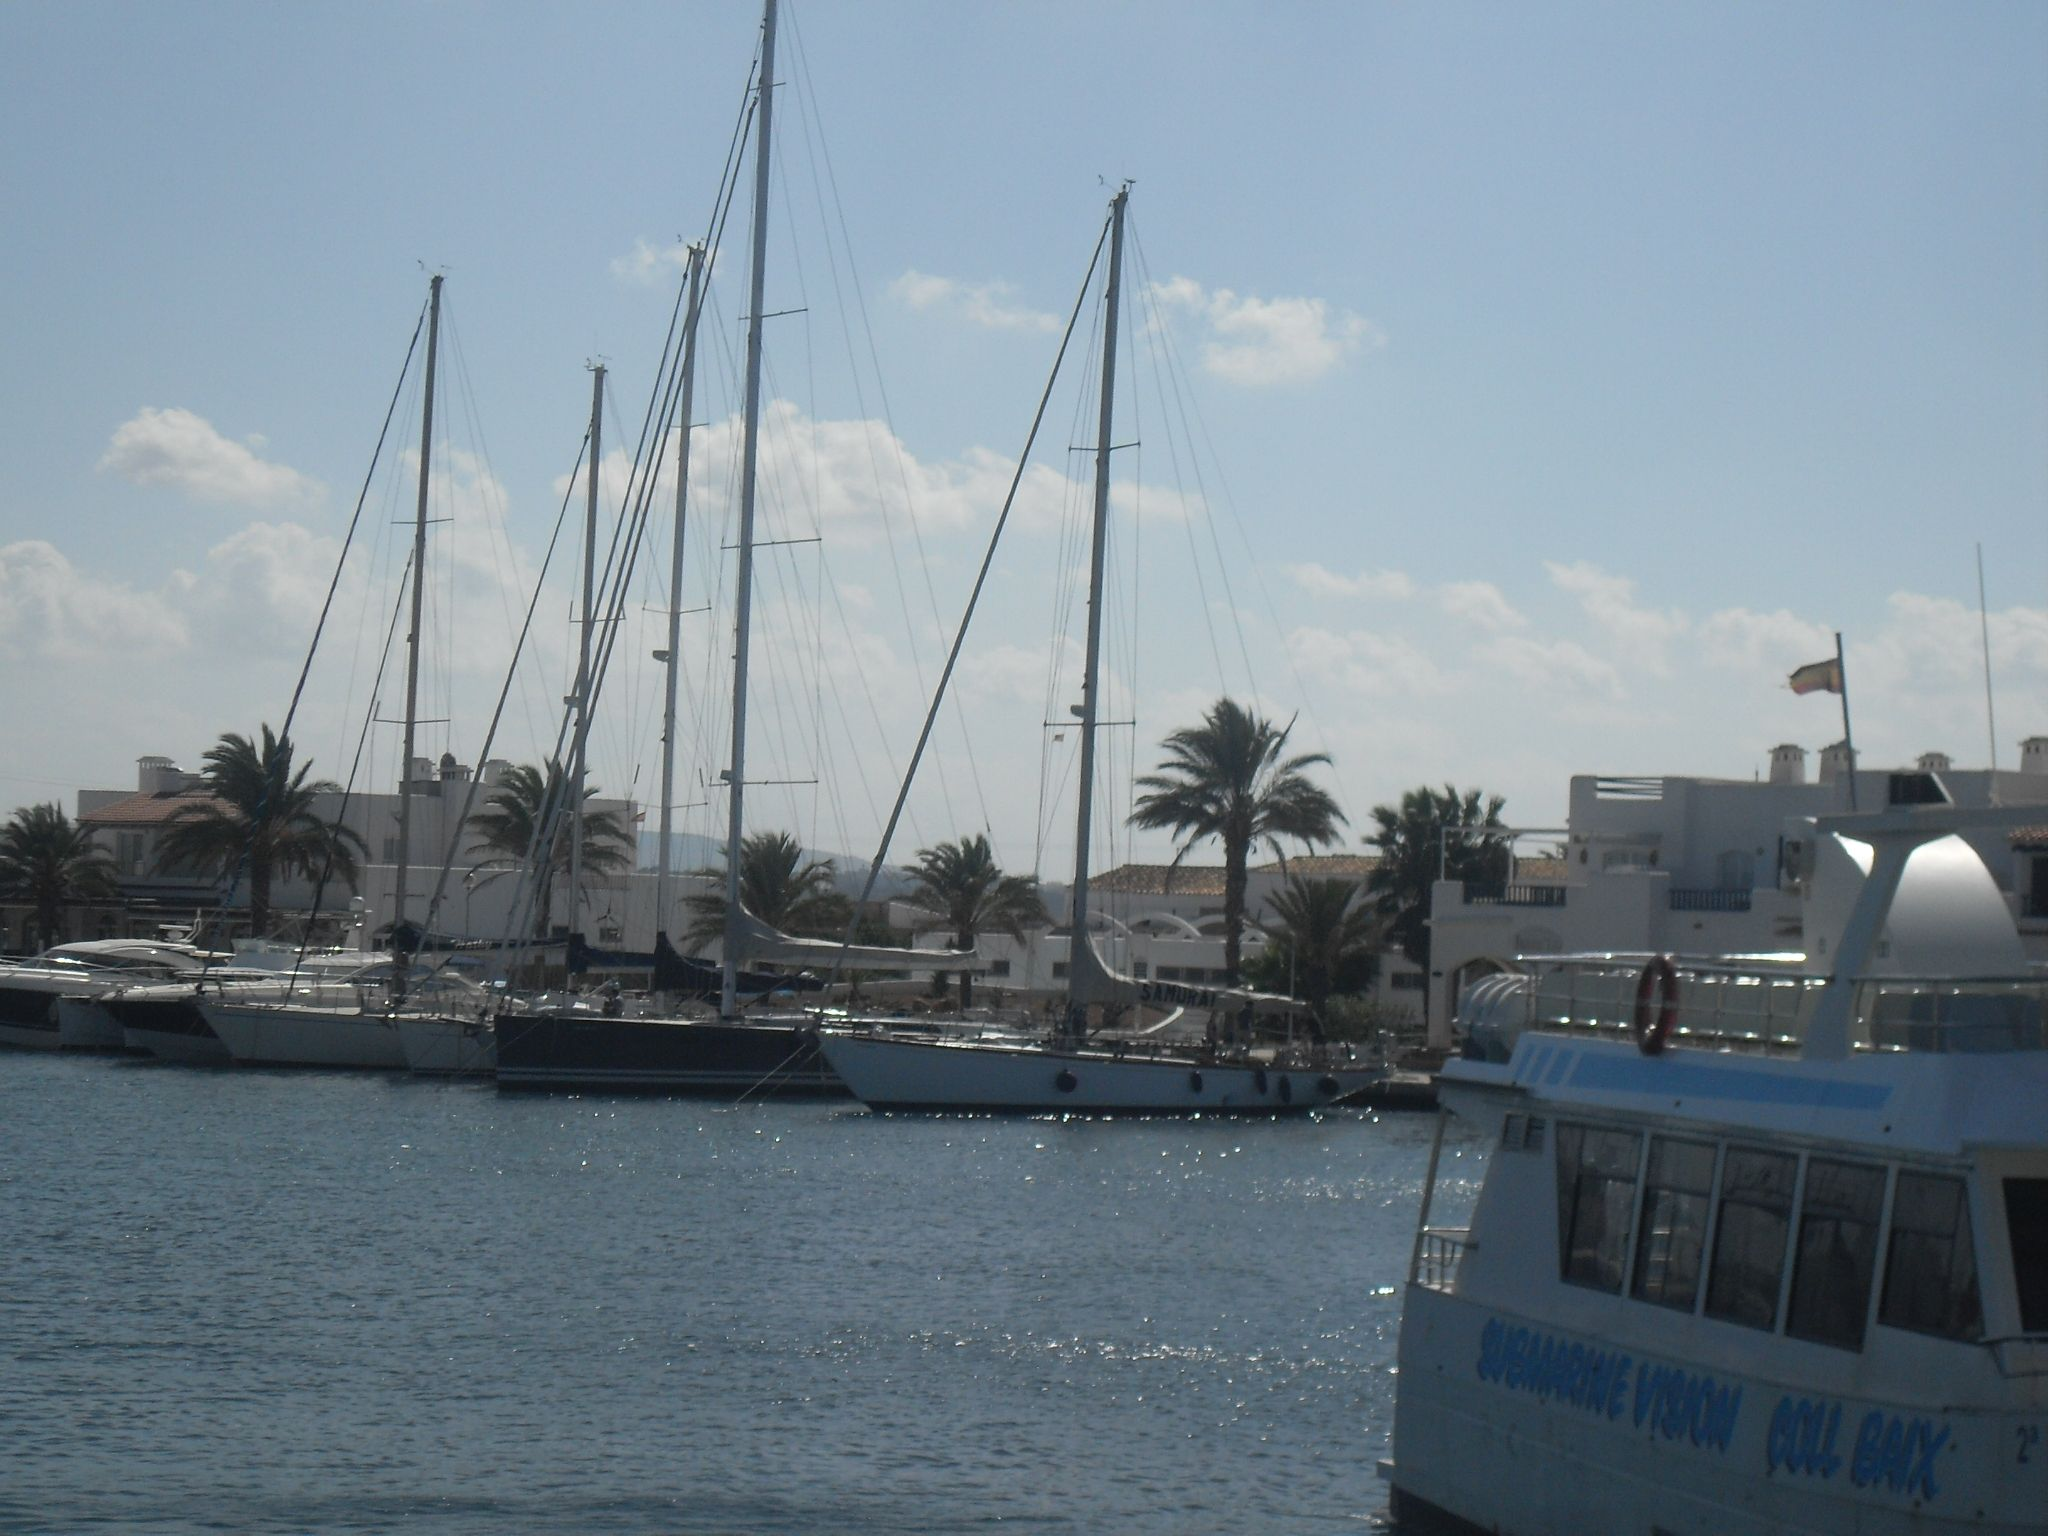 the port of Formentera